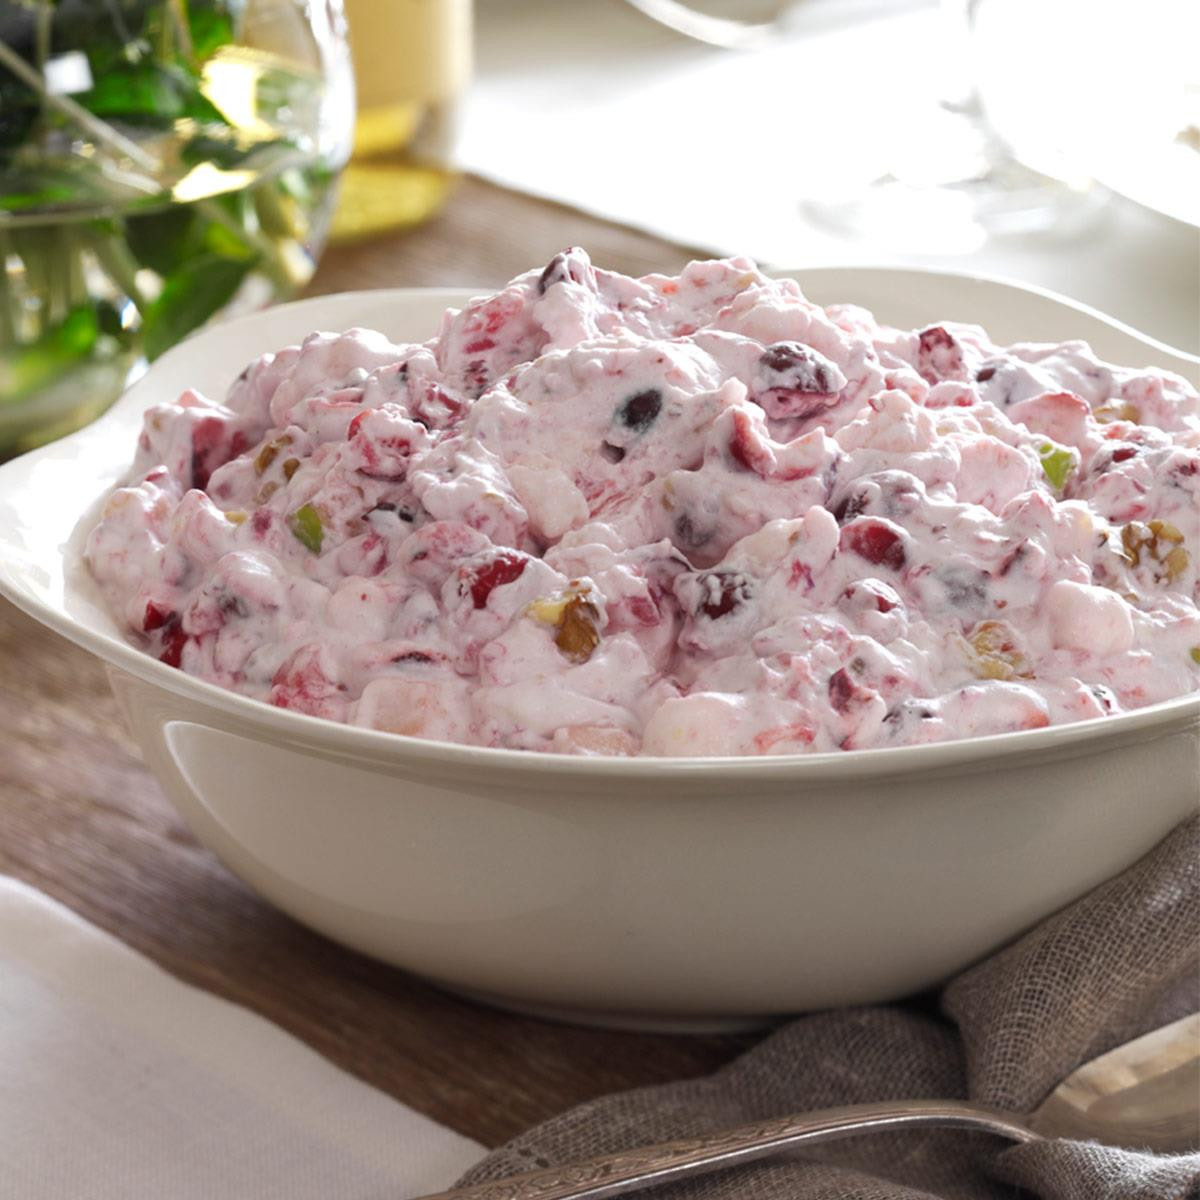 Cranberry Salad Recipes For Thanksgiving  Creamy Cranberry Salad Recipe